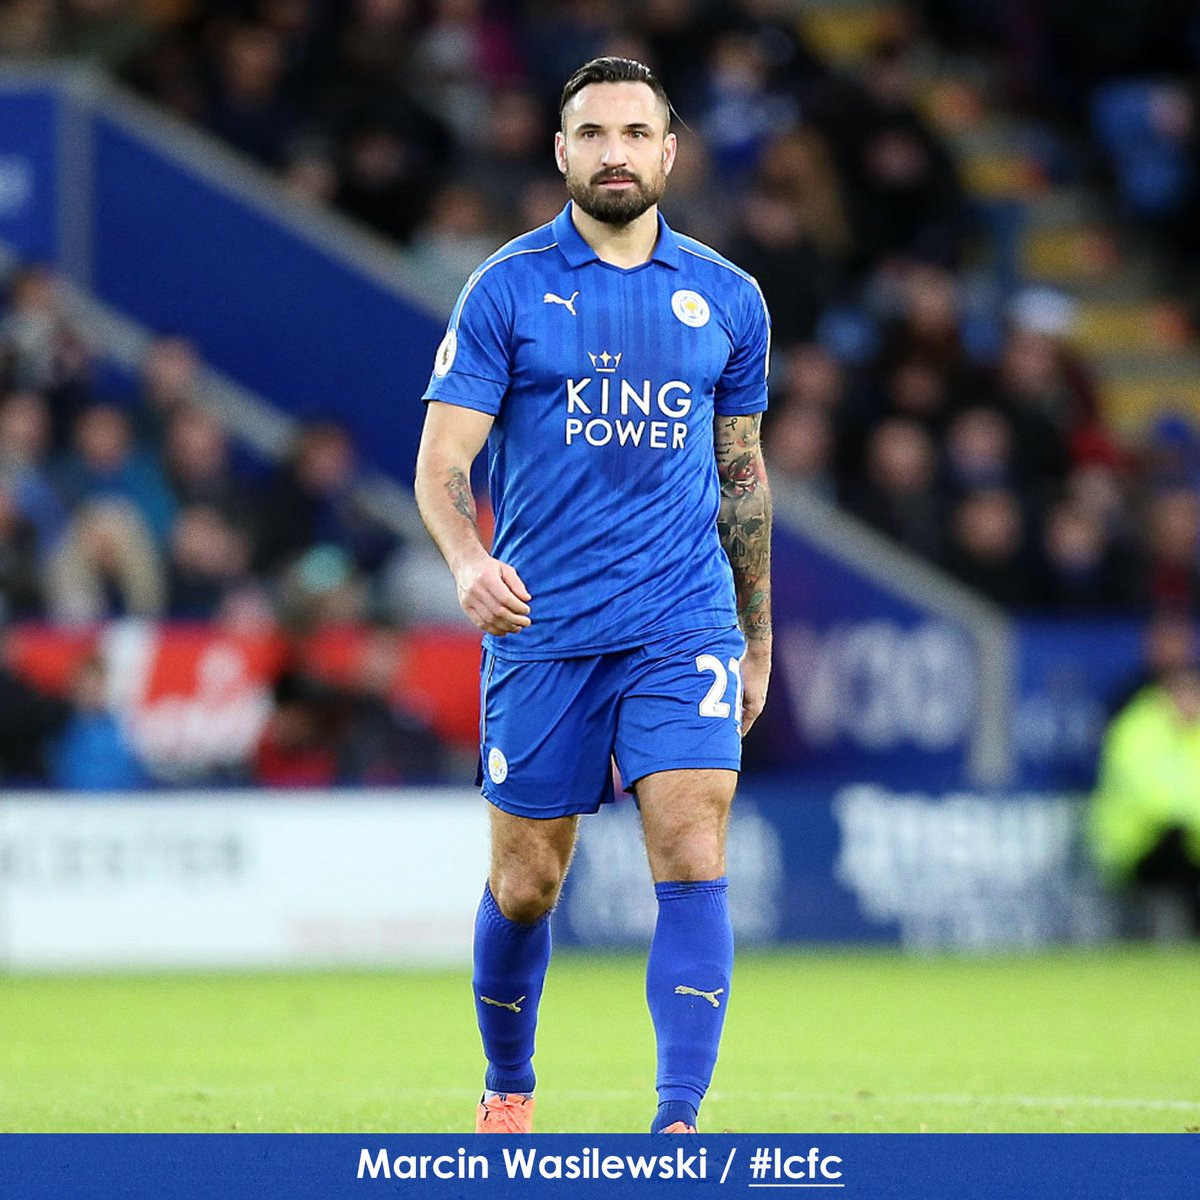 We bid farewell to an outstanding Club servant tomorrow, as Marcin Wasilewski calls time on his spell with #lcfc:  http:// leic.it/2r3jNEK  &nbsp;  <br>http://pic.twitter.com/XX8H5S14WH